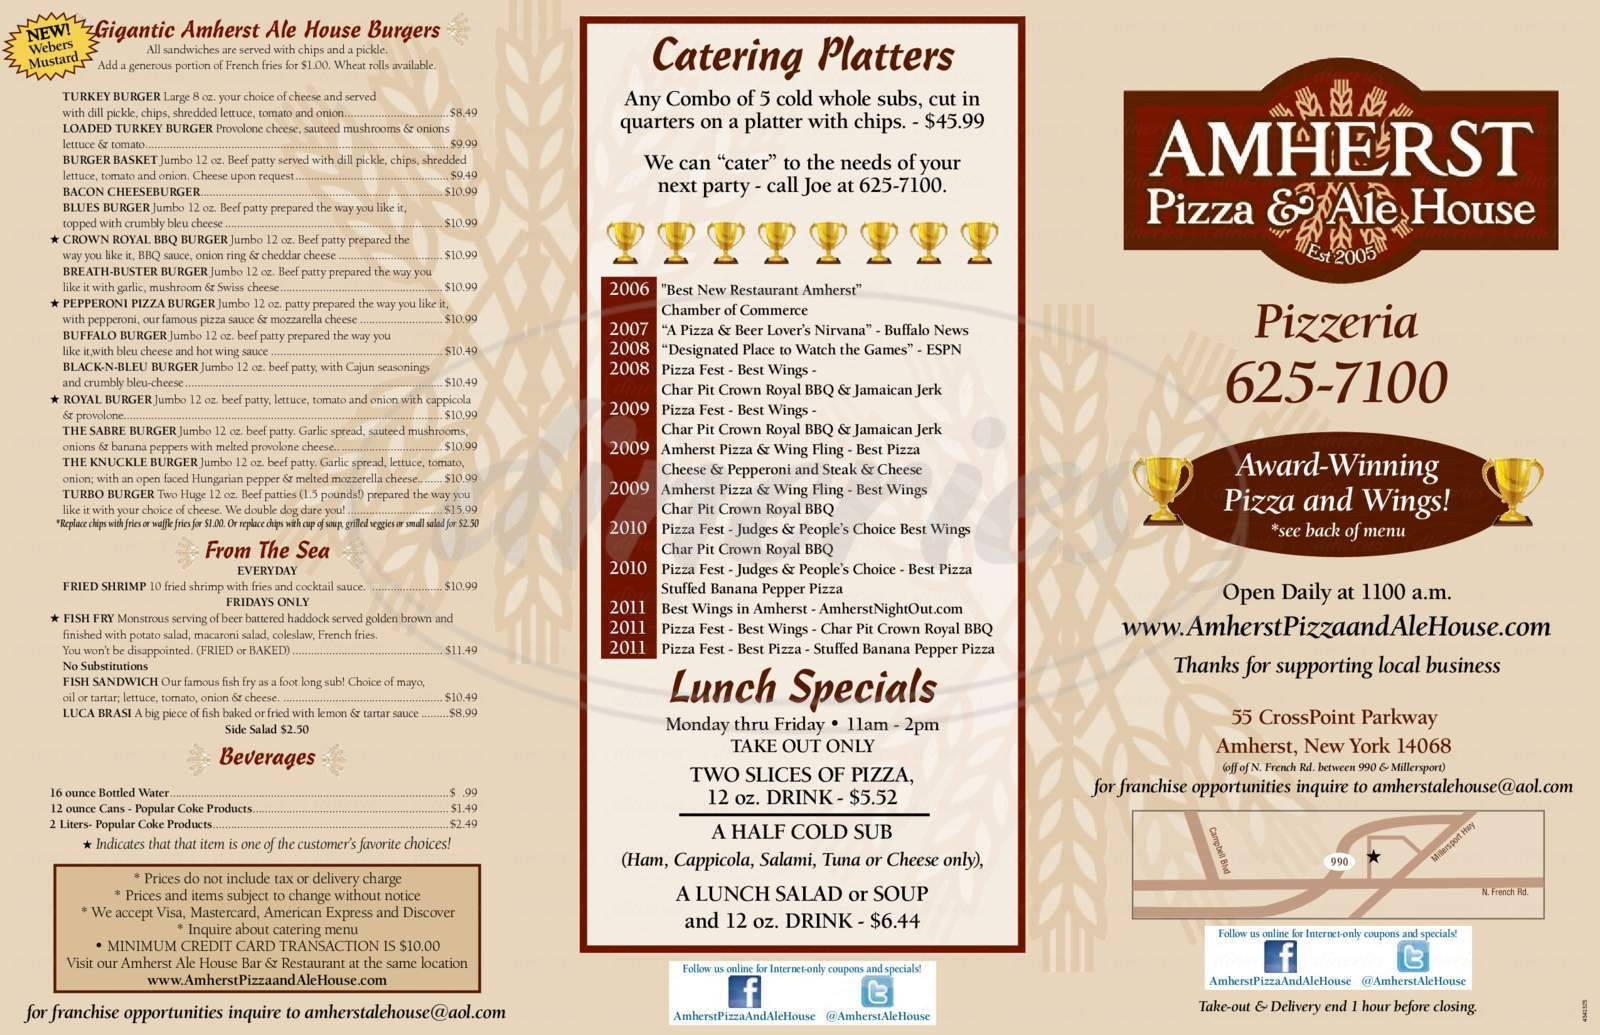 menu for AMHERST PIZZA & ALE HOUSE